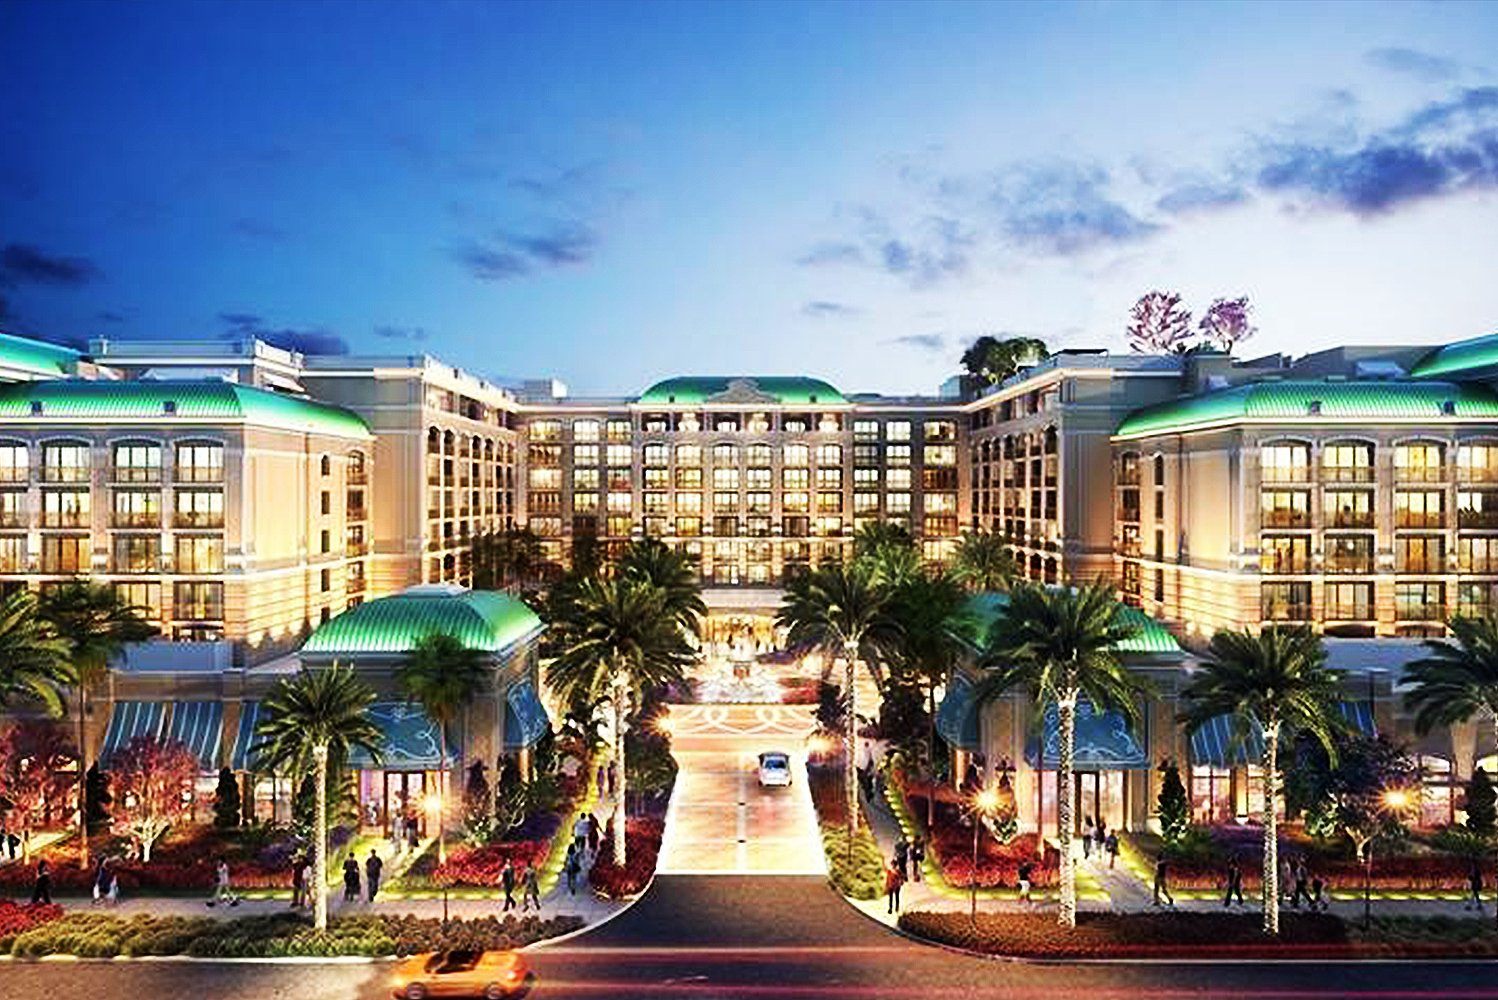 Lifescapes International will design the landscape environment for the $245 million development of the Westin Anaheim Resort.